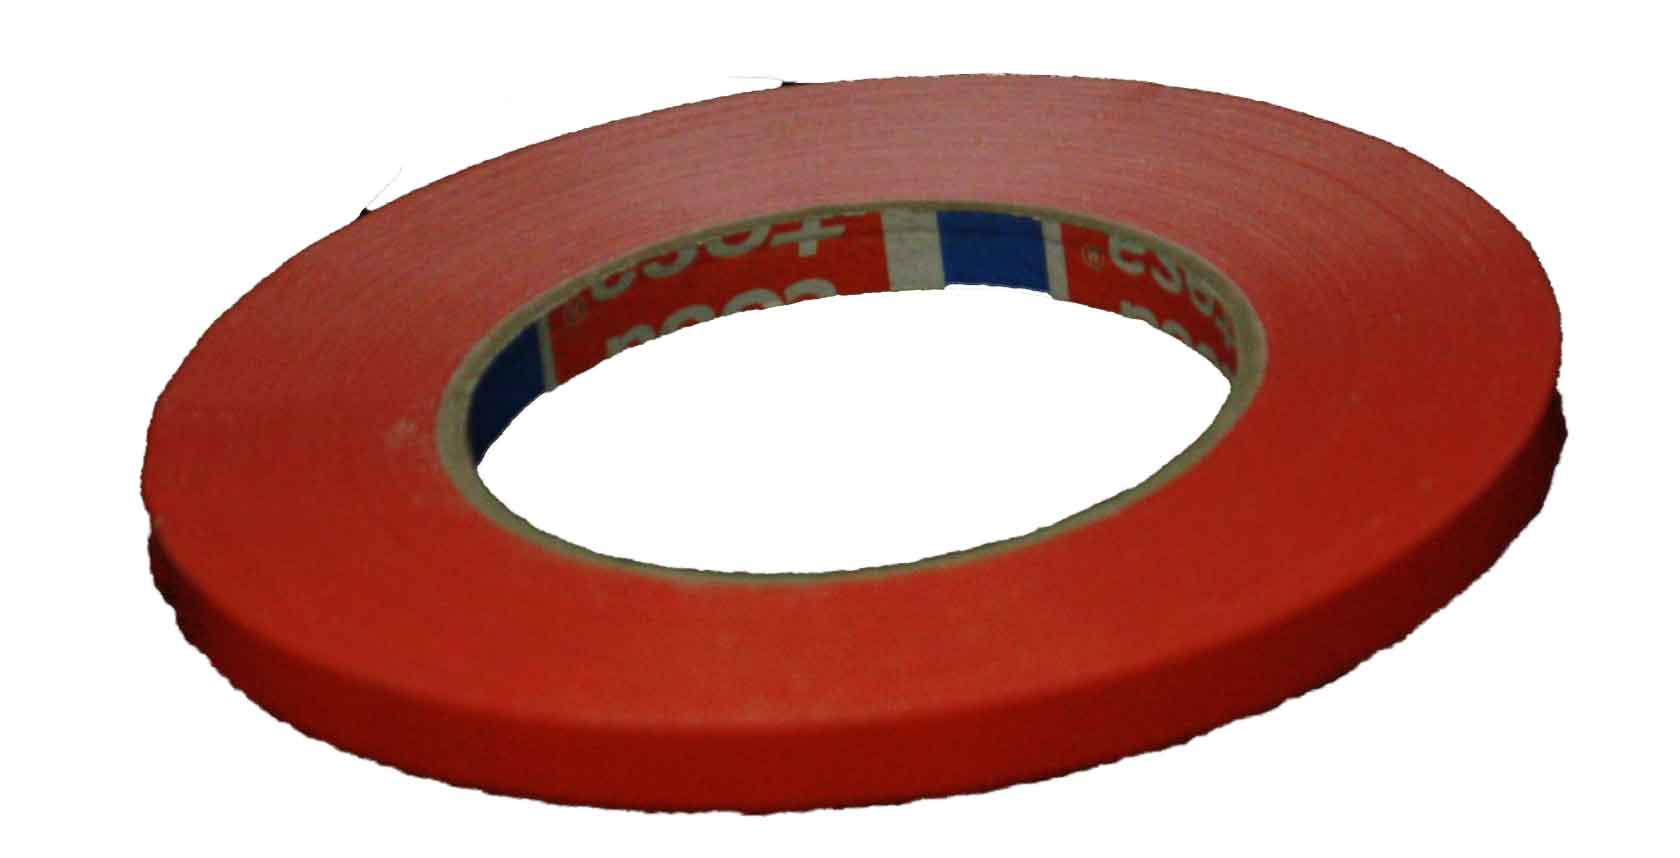 Plastic bag tape sealer - We Now Have Tape For The Bag Taping Machine To Use When Sealing The Bags Above The Rolls Of Tape Are 3 8 Of Inch Wide By 540 Feet Long